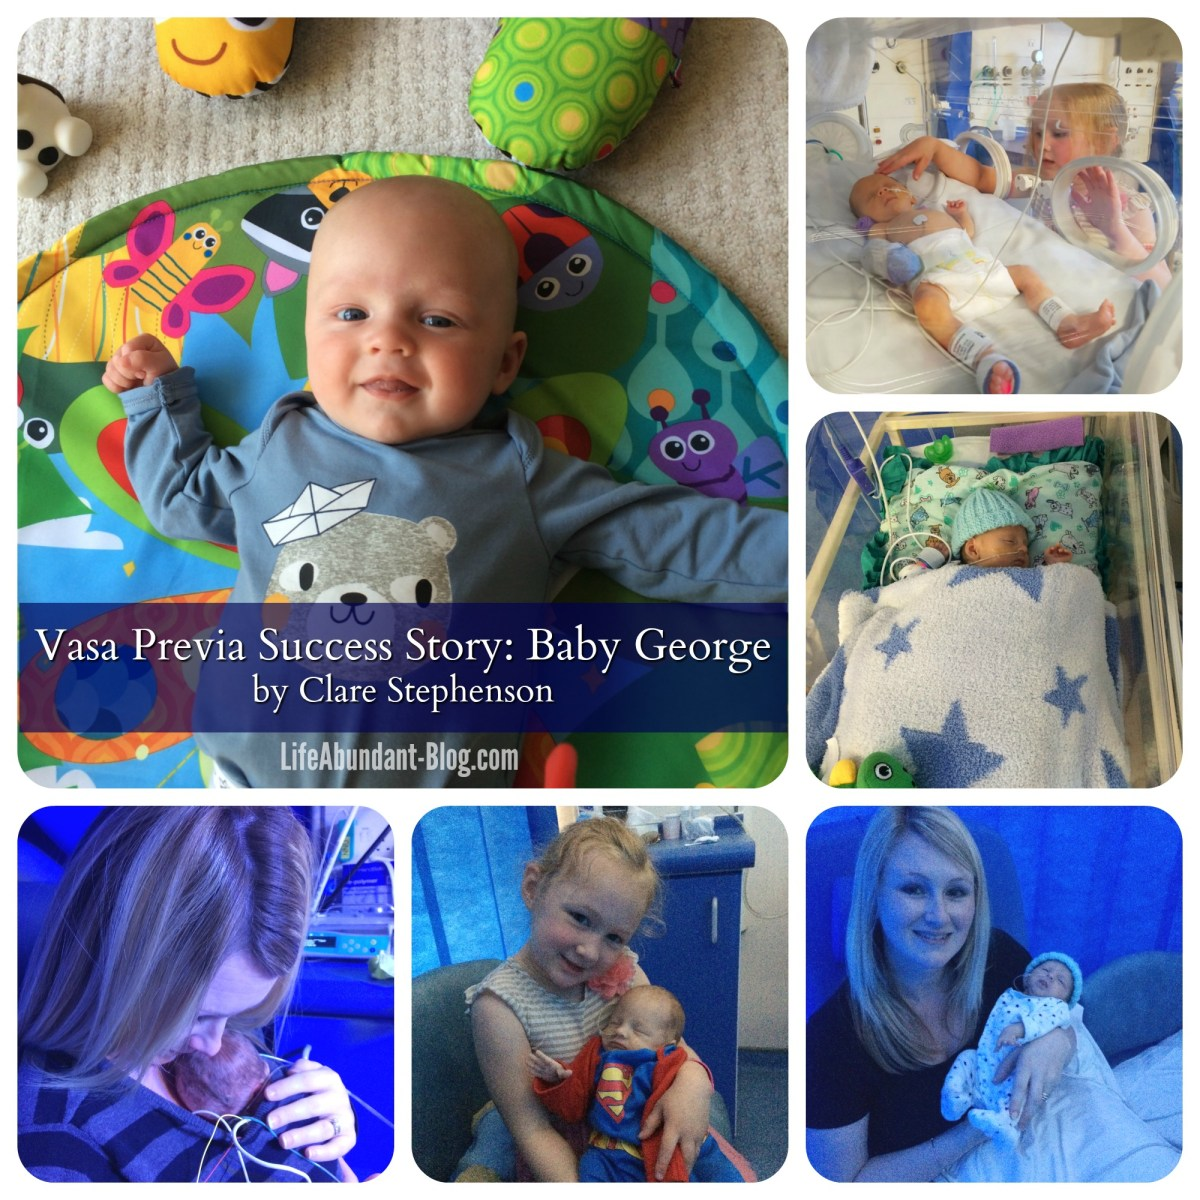 Vasa Previa Success Story: Baby George, by Clare Stephenson